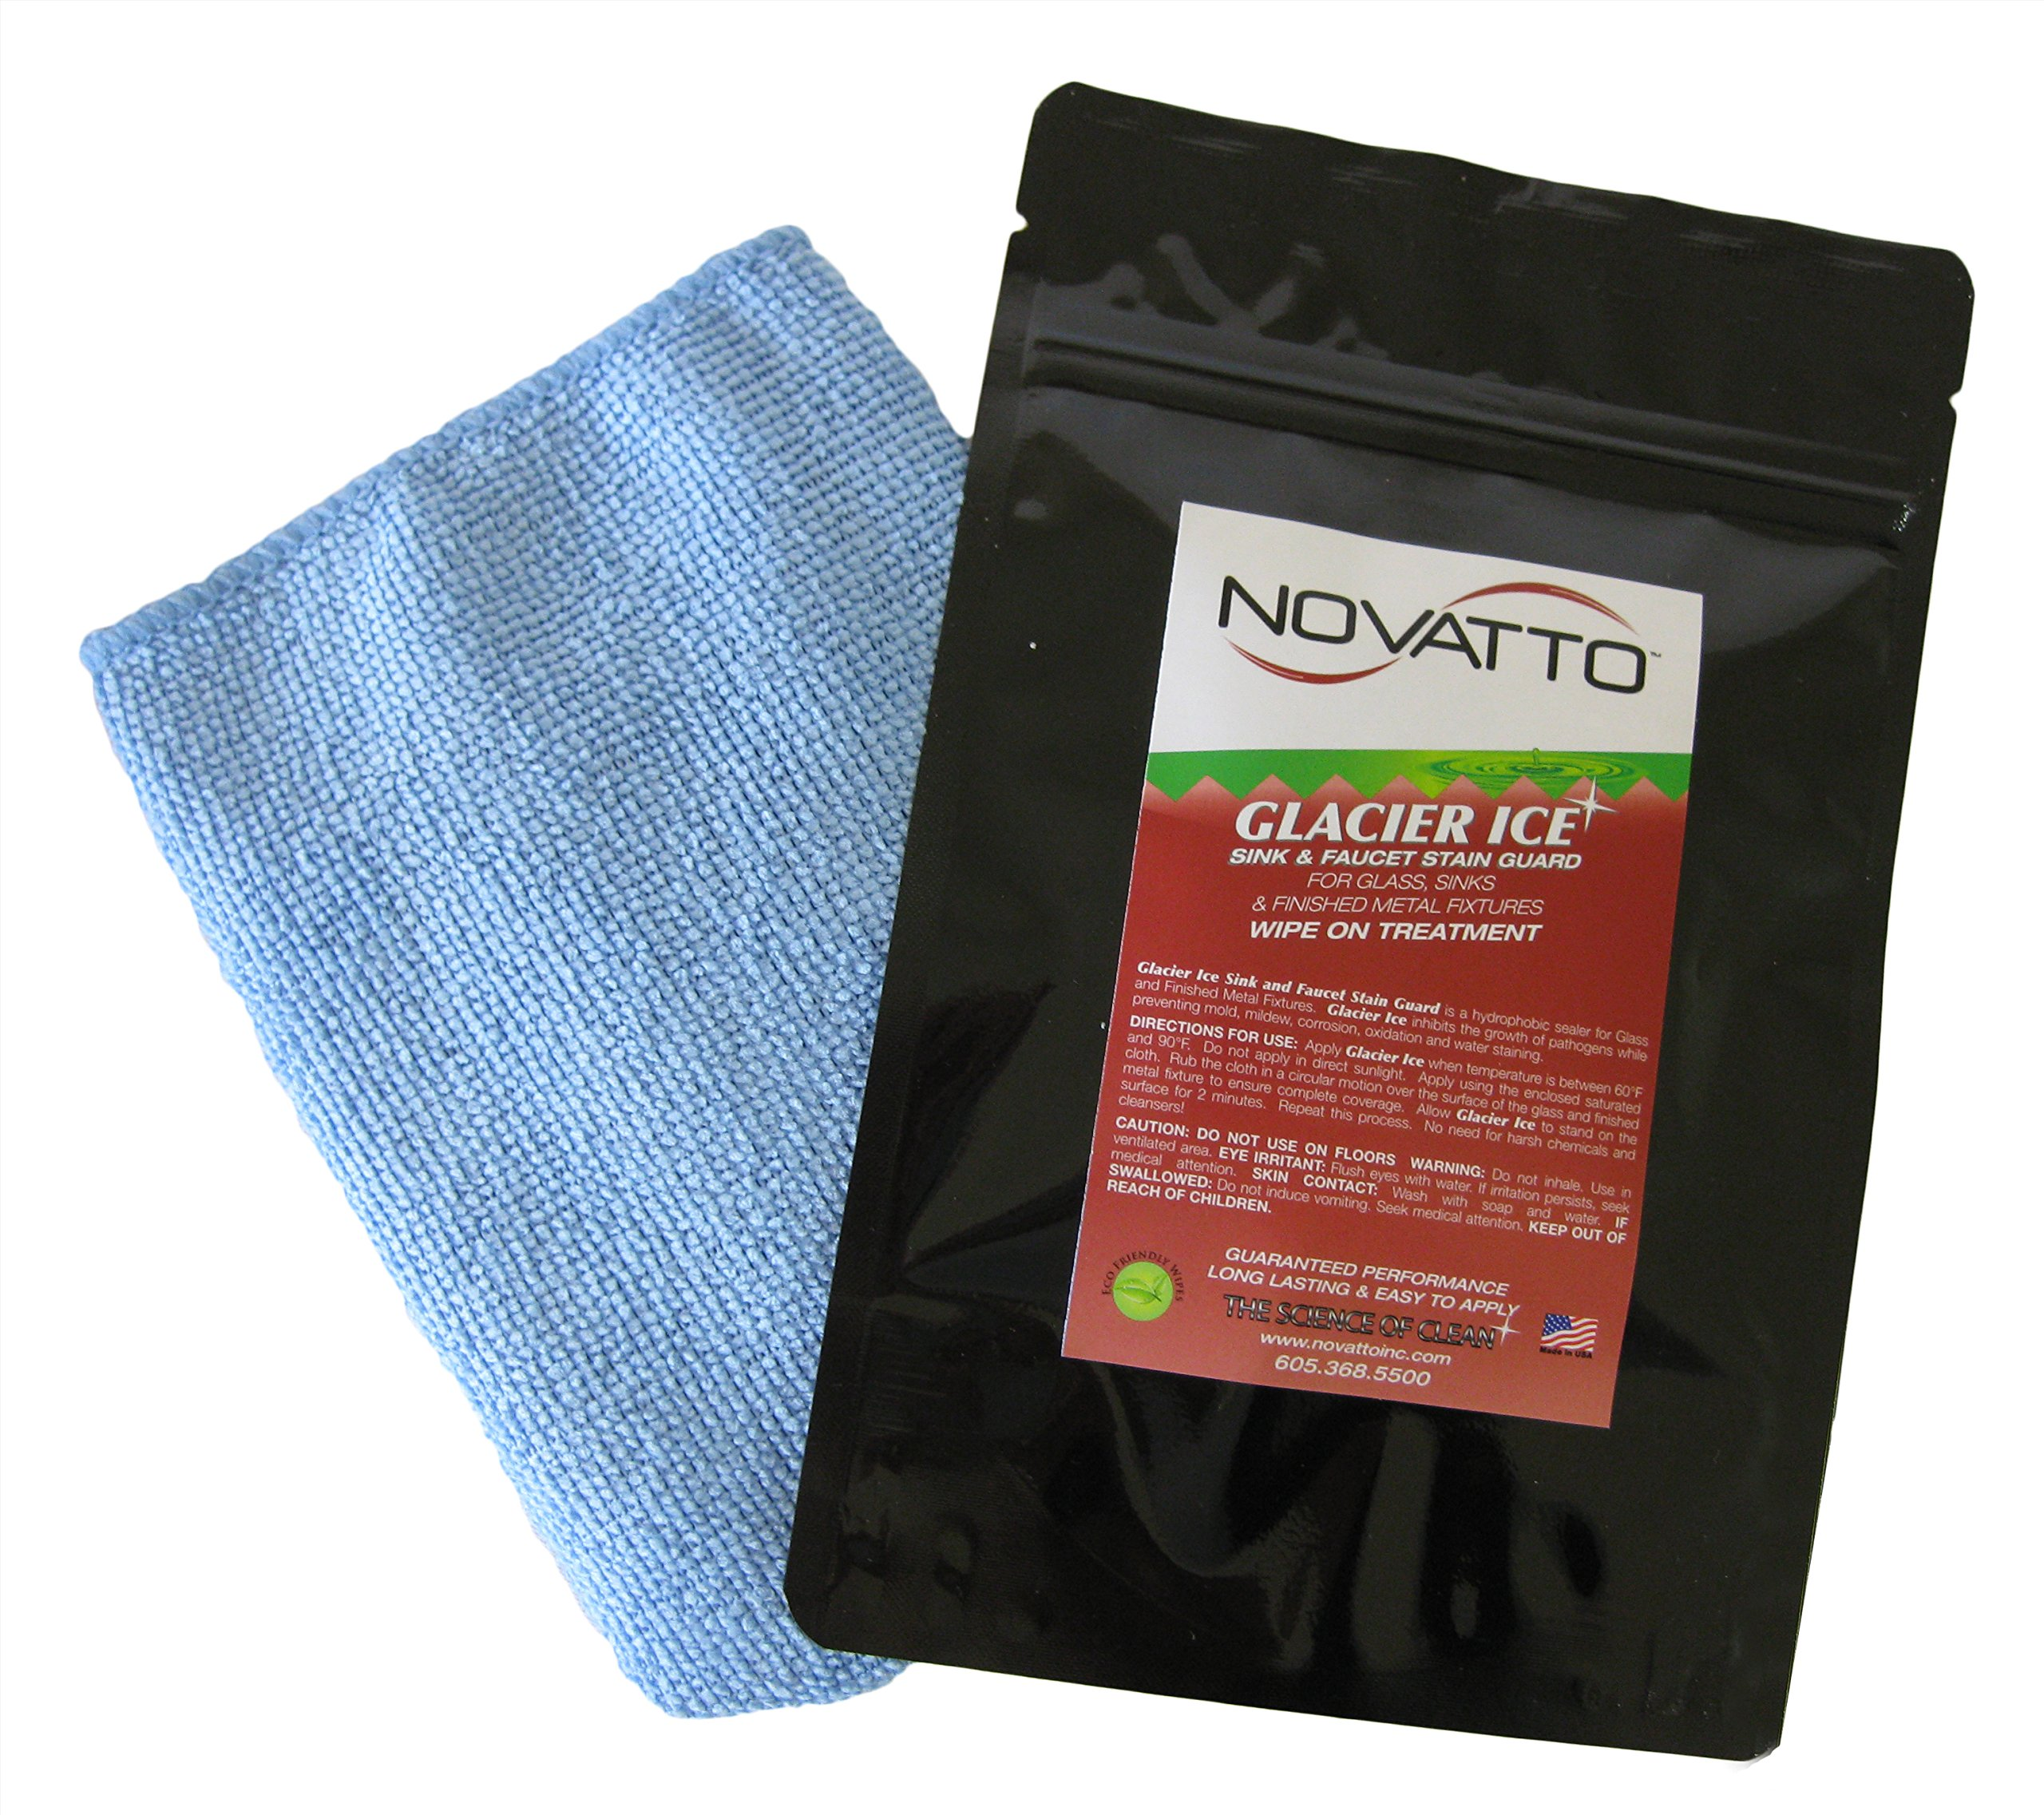 Novatto GLACIER ICE Sink & Faucet Stain Guard and Sealer by Novatto (Image #1)